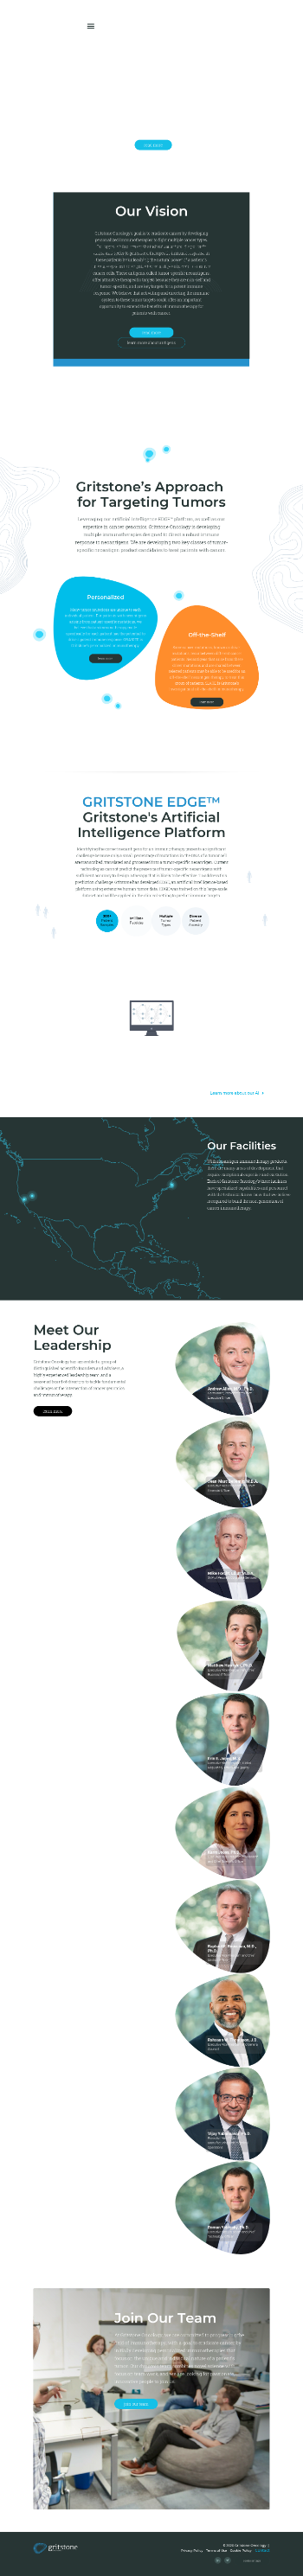 Gritstone Oncology, Inc. Website Screenshot